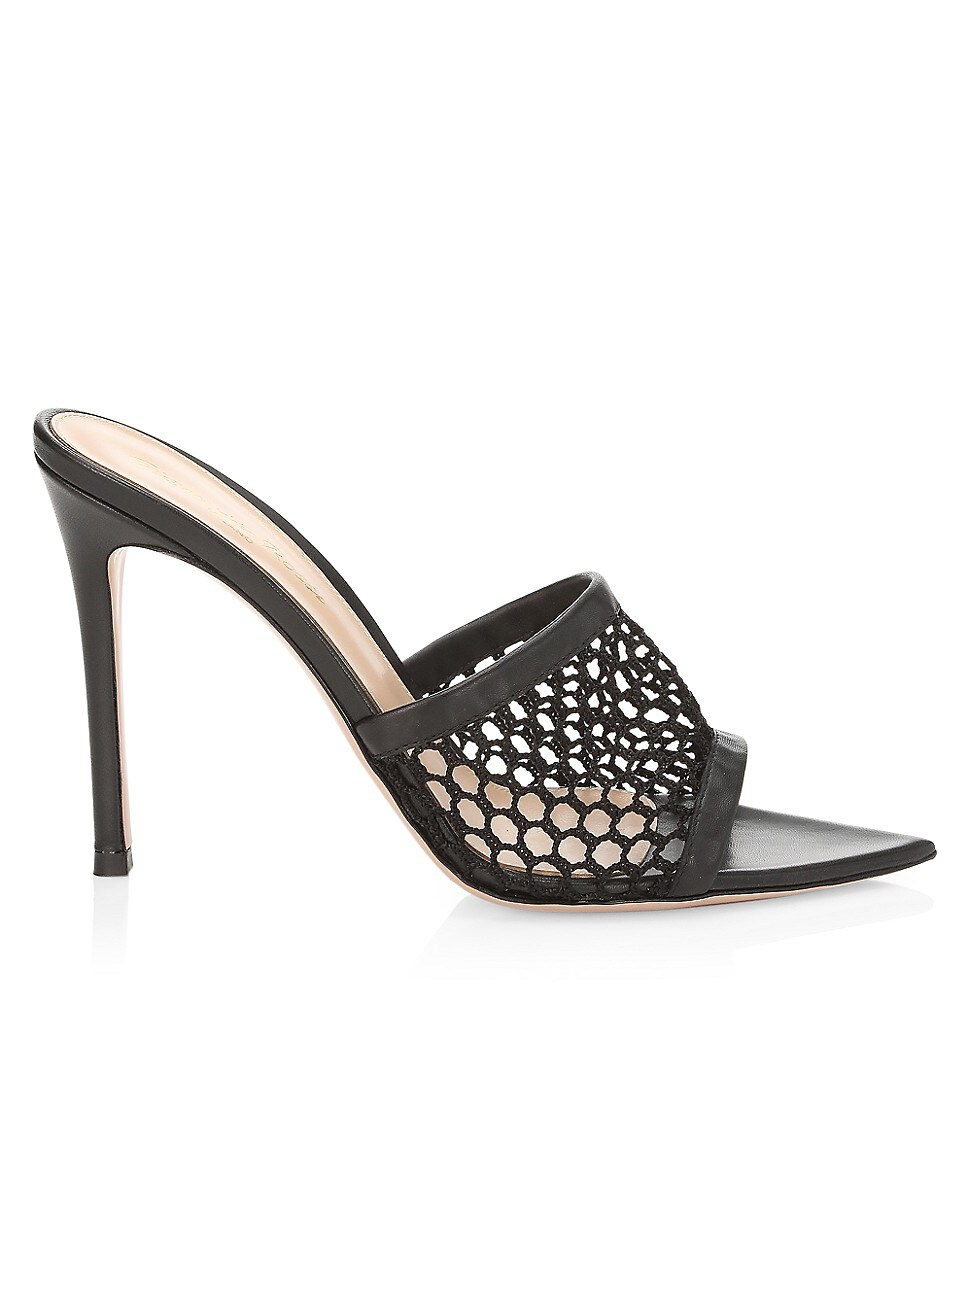 Gianvito Rossi WOMEN'S RUBY ROSE MESH LEATHER MULES